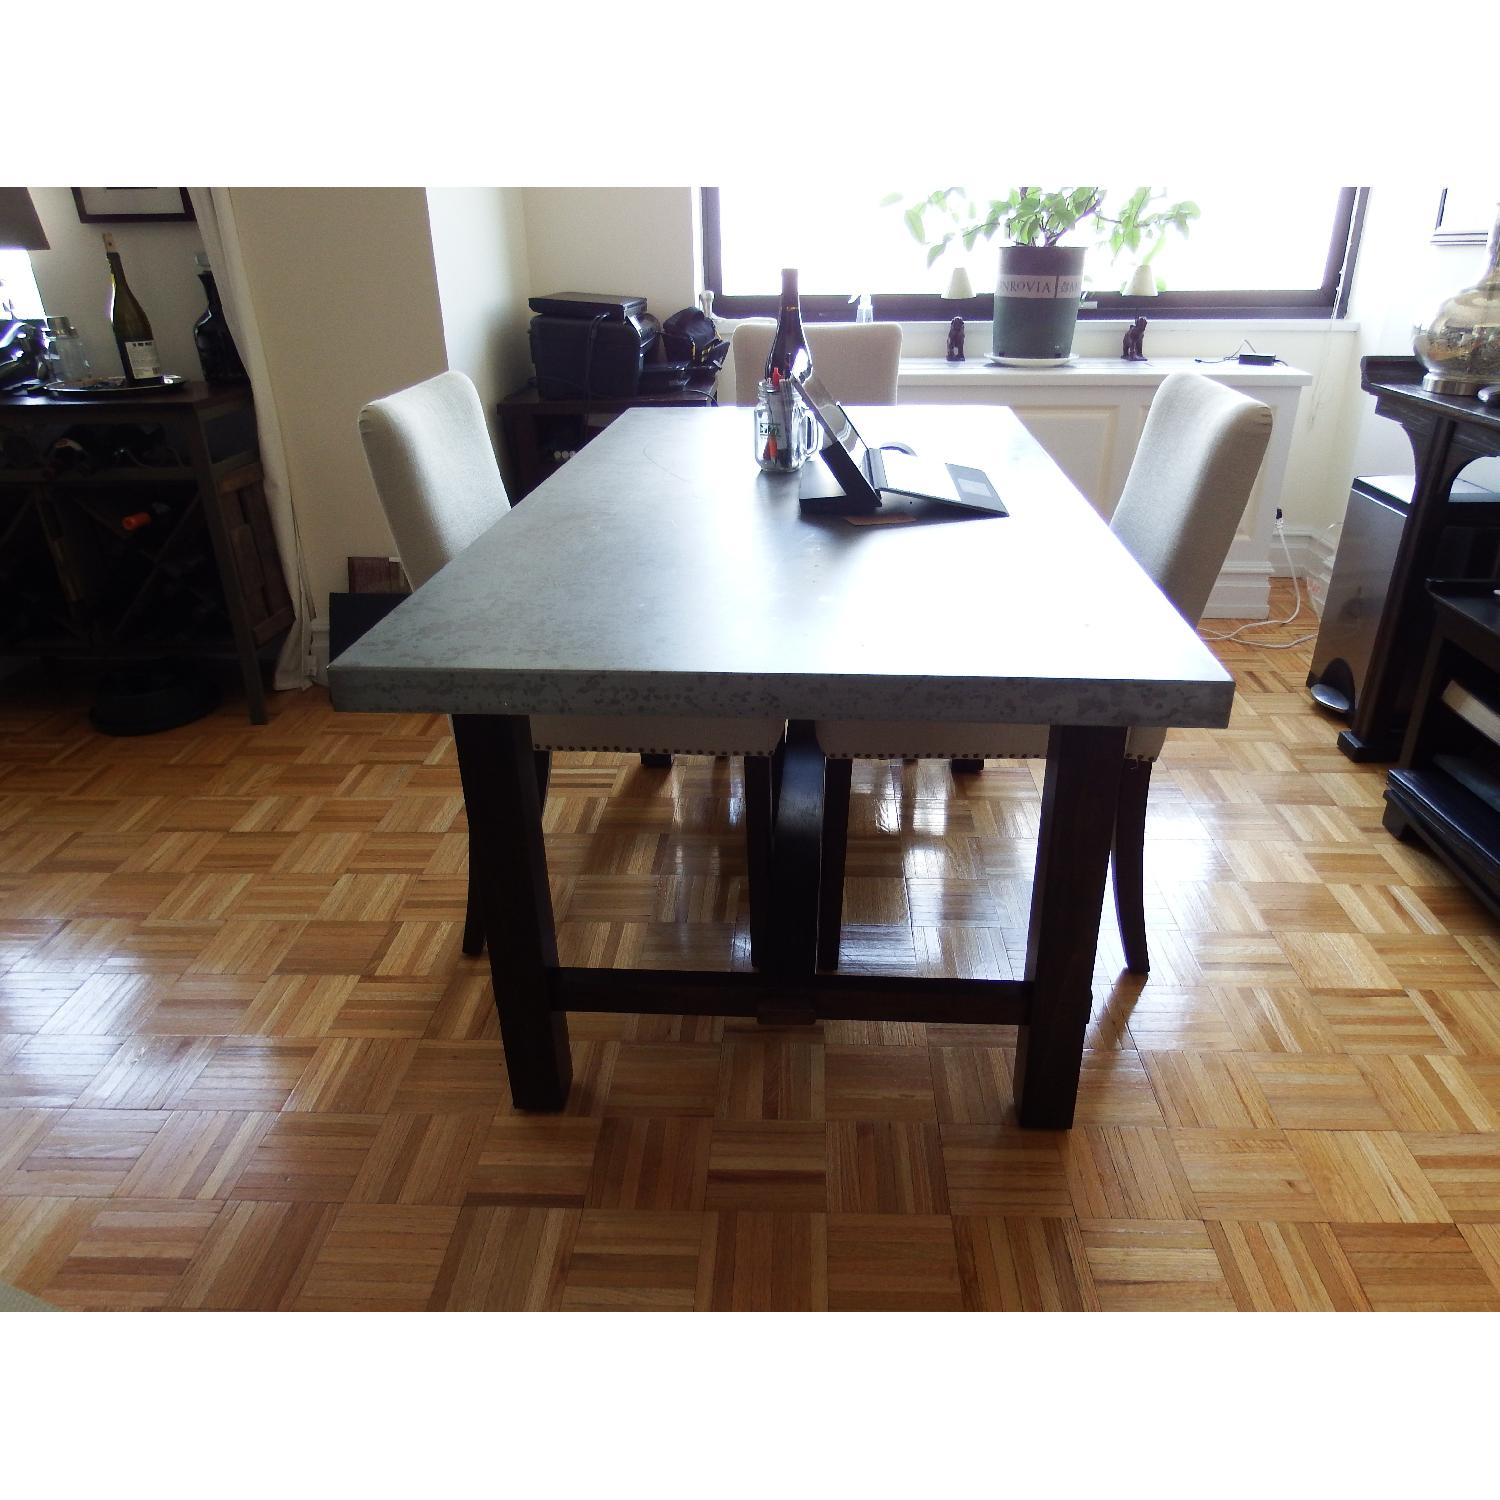 Zinc Top Dining Table - image-1